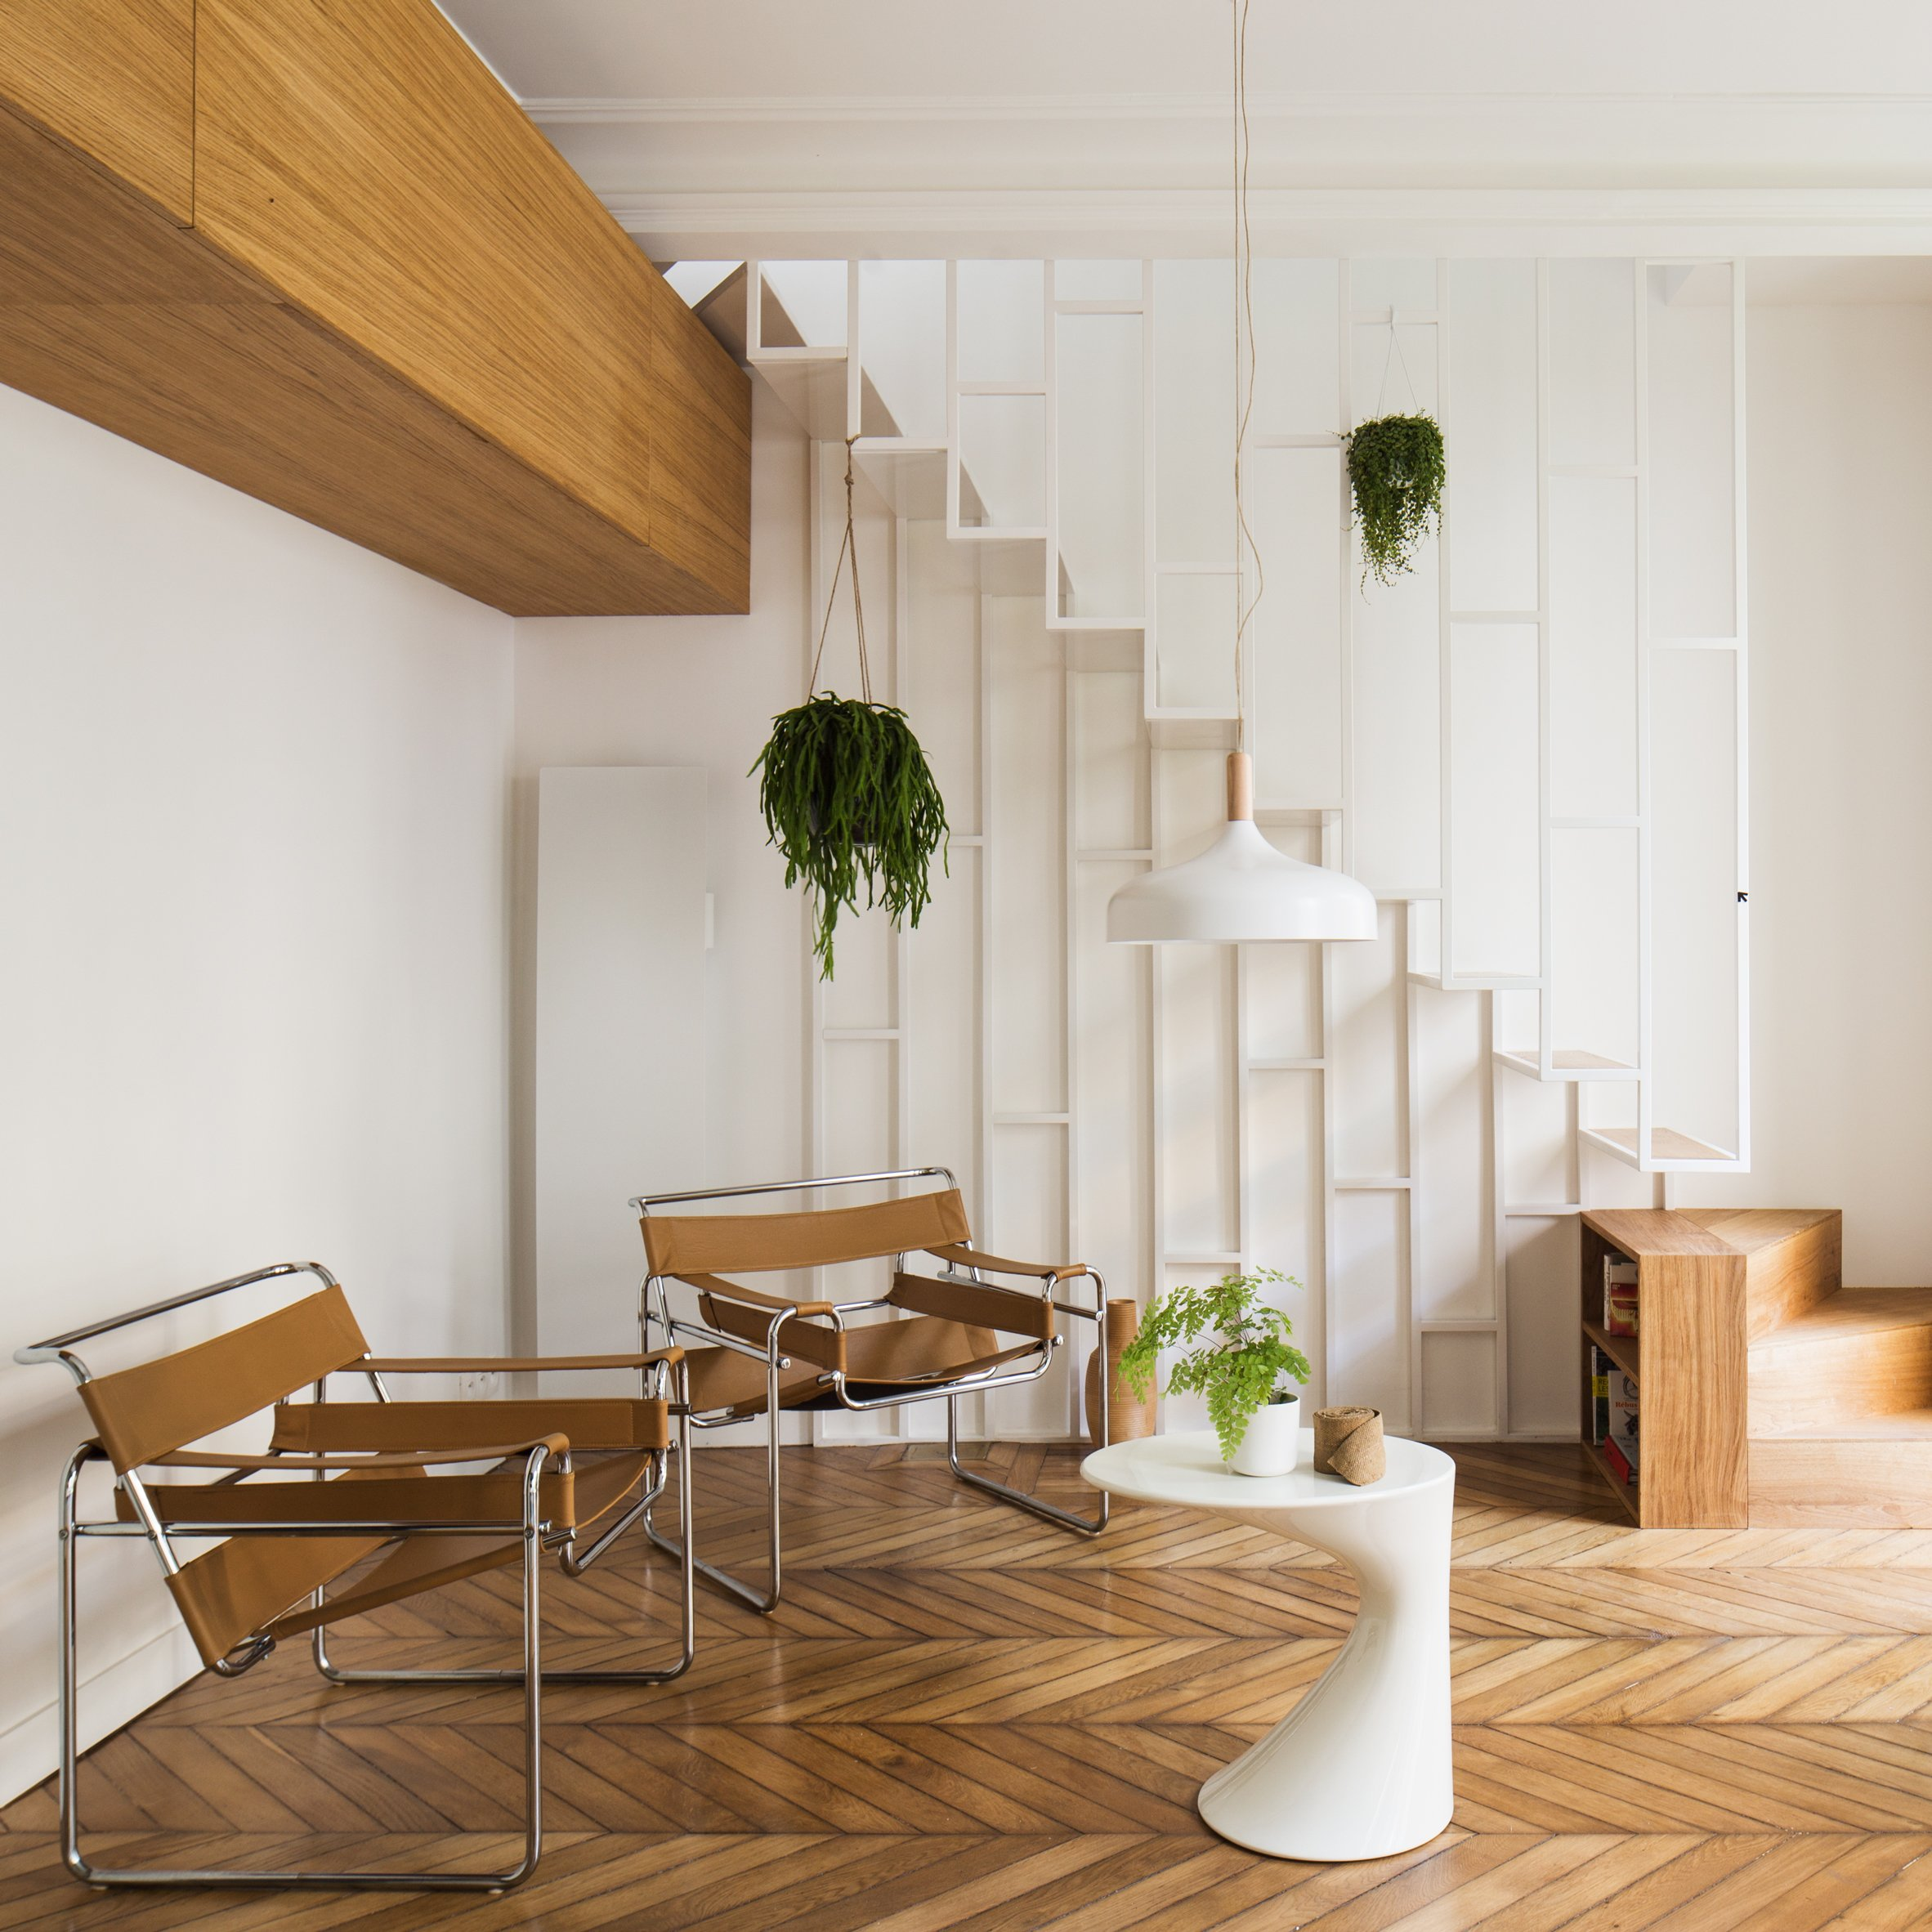 Paris Interior Design paris apartments interior design and architecture | dezeen